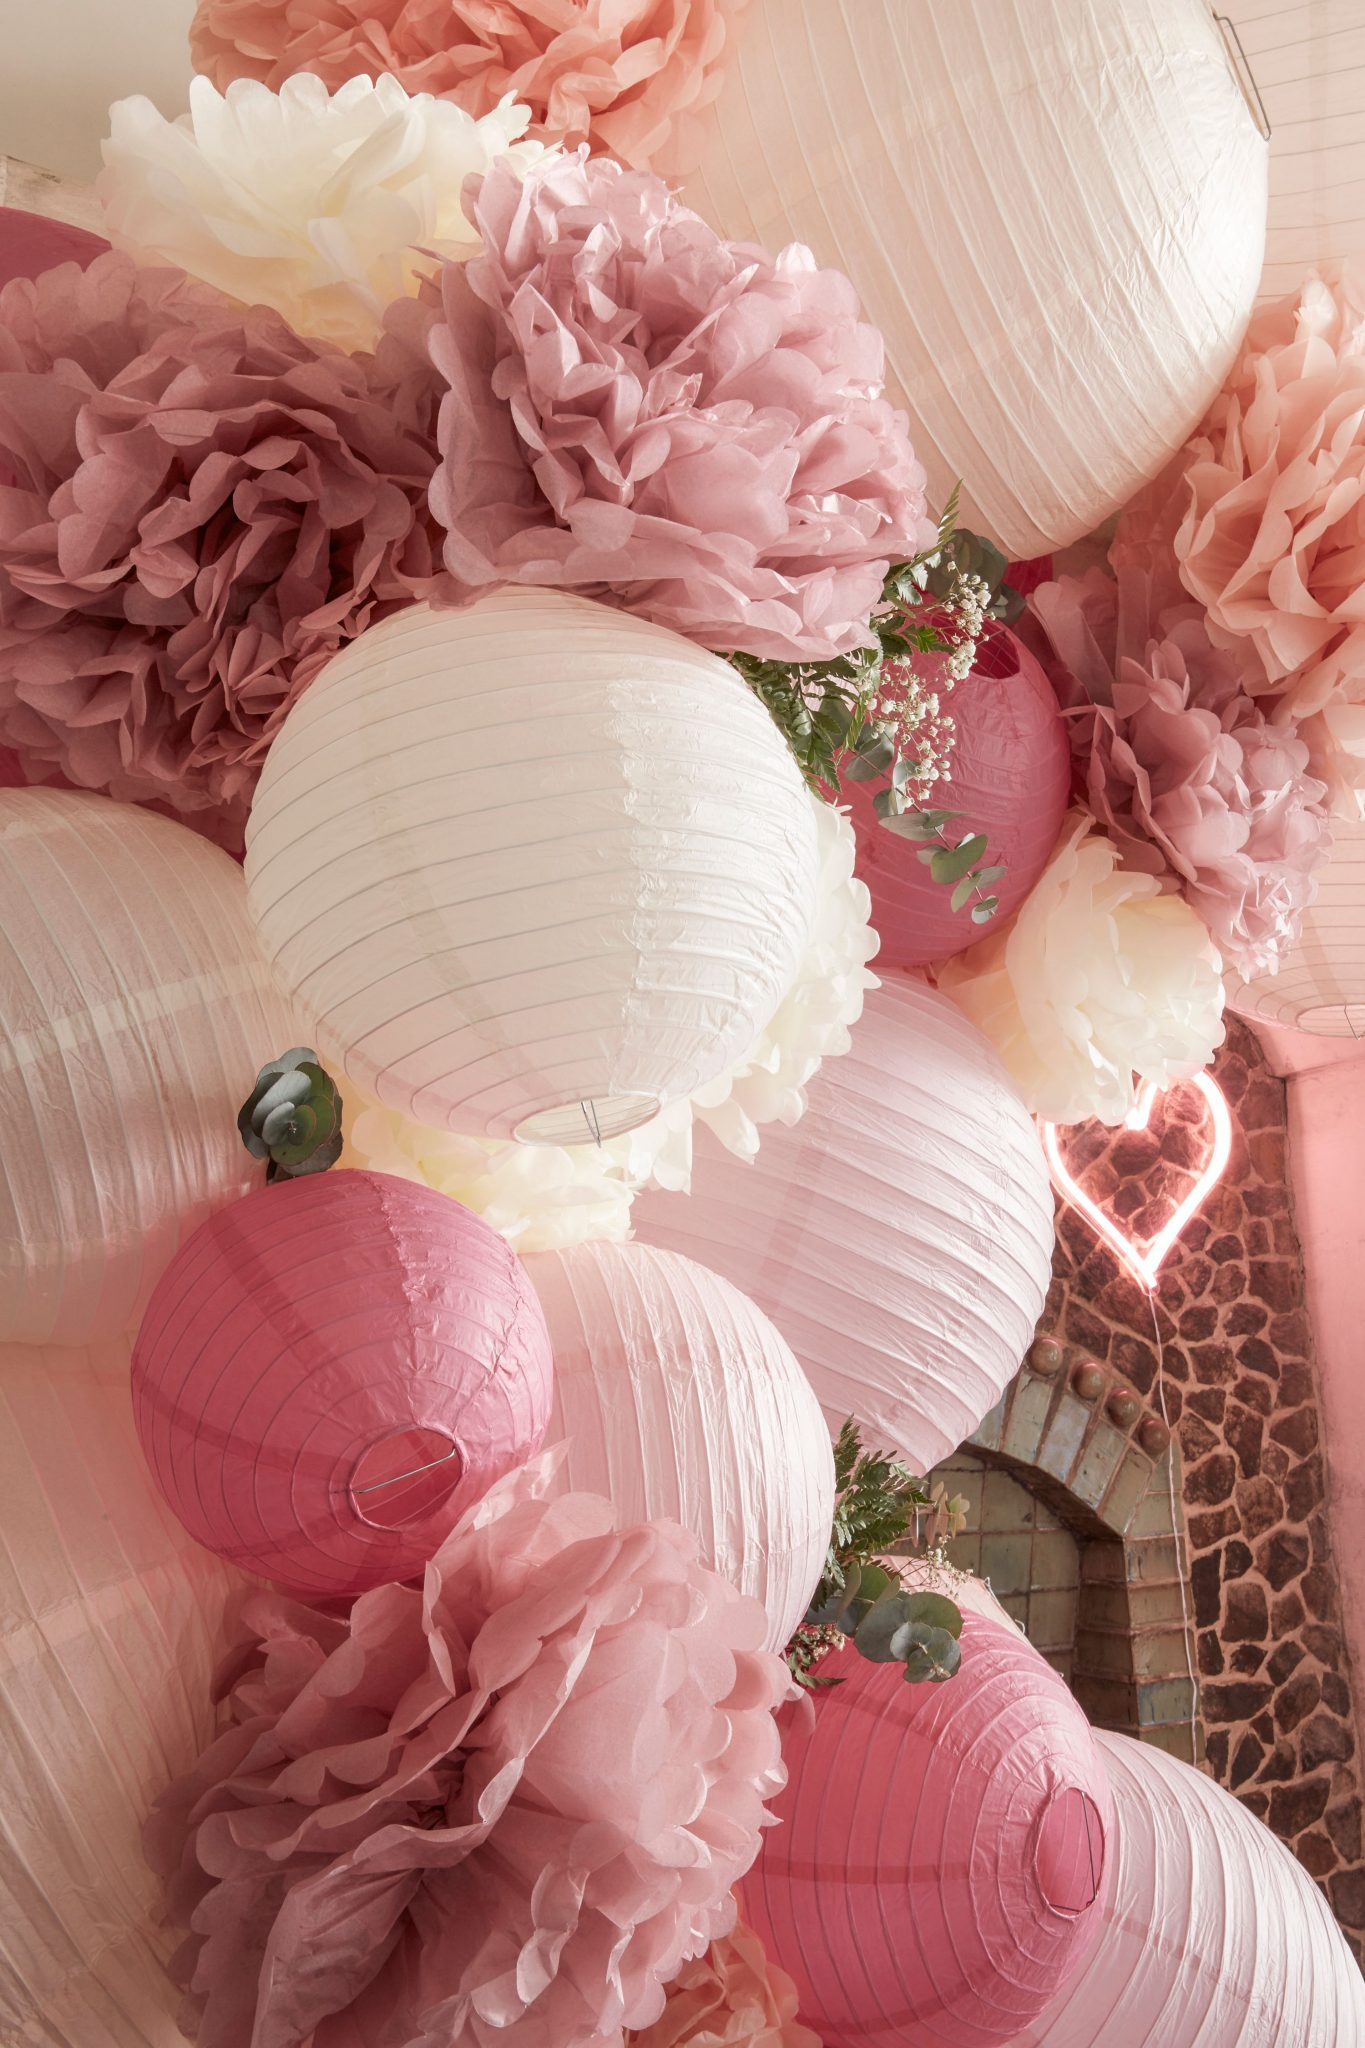 decoration mariage lampion lanterne boule rose ivoire blanc blush